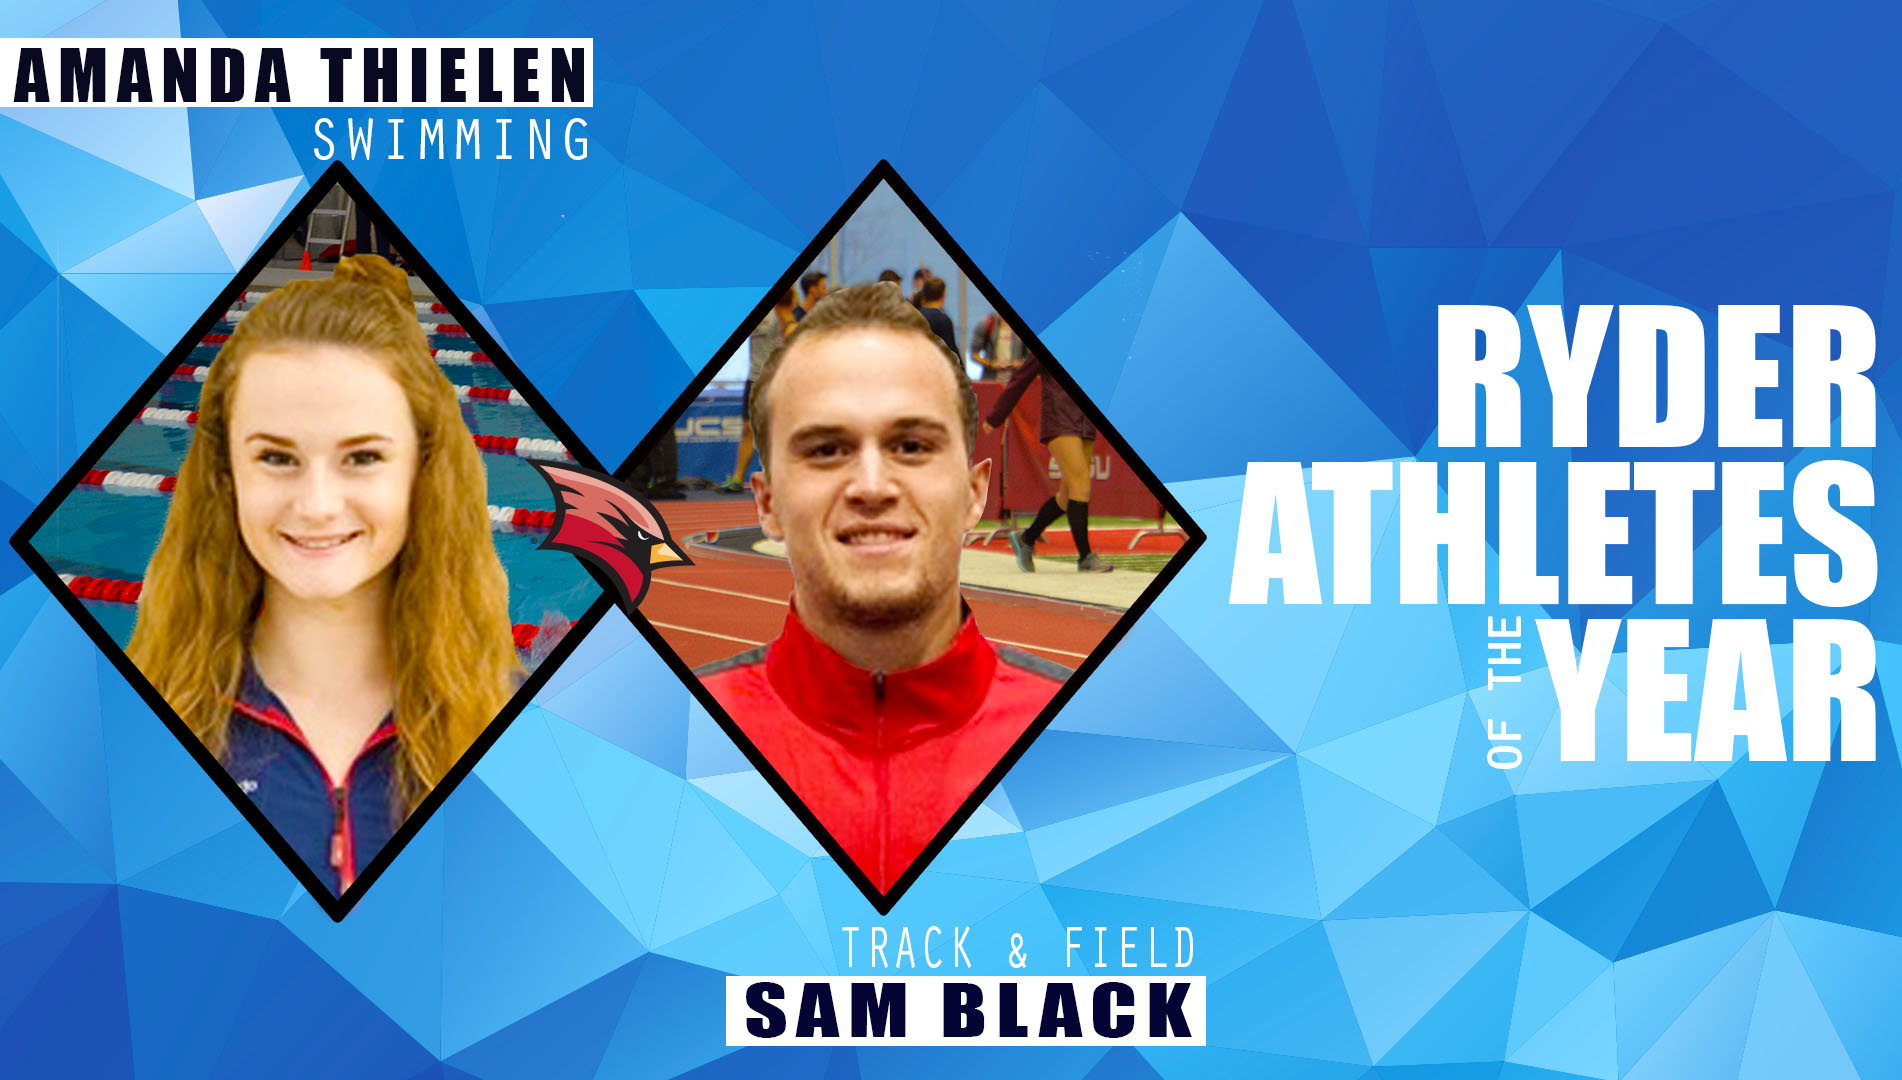 Thielen and Black Named 2016-17 Ryder Athletes of the Year